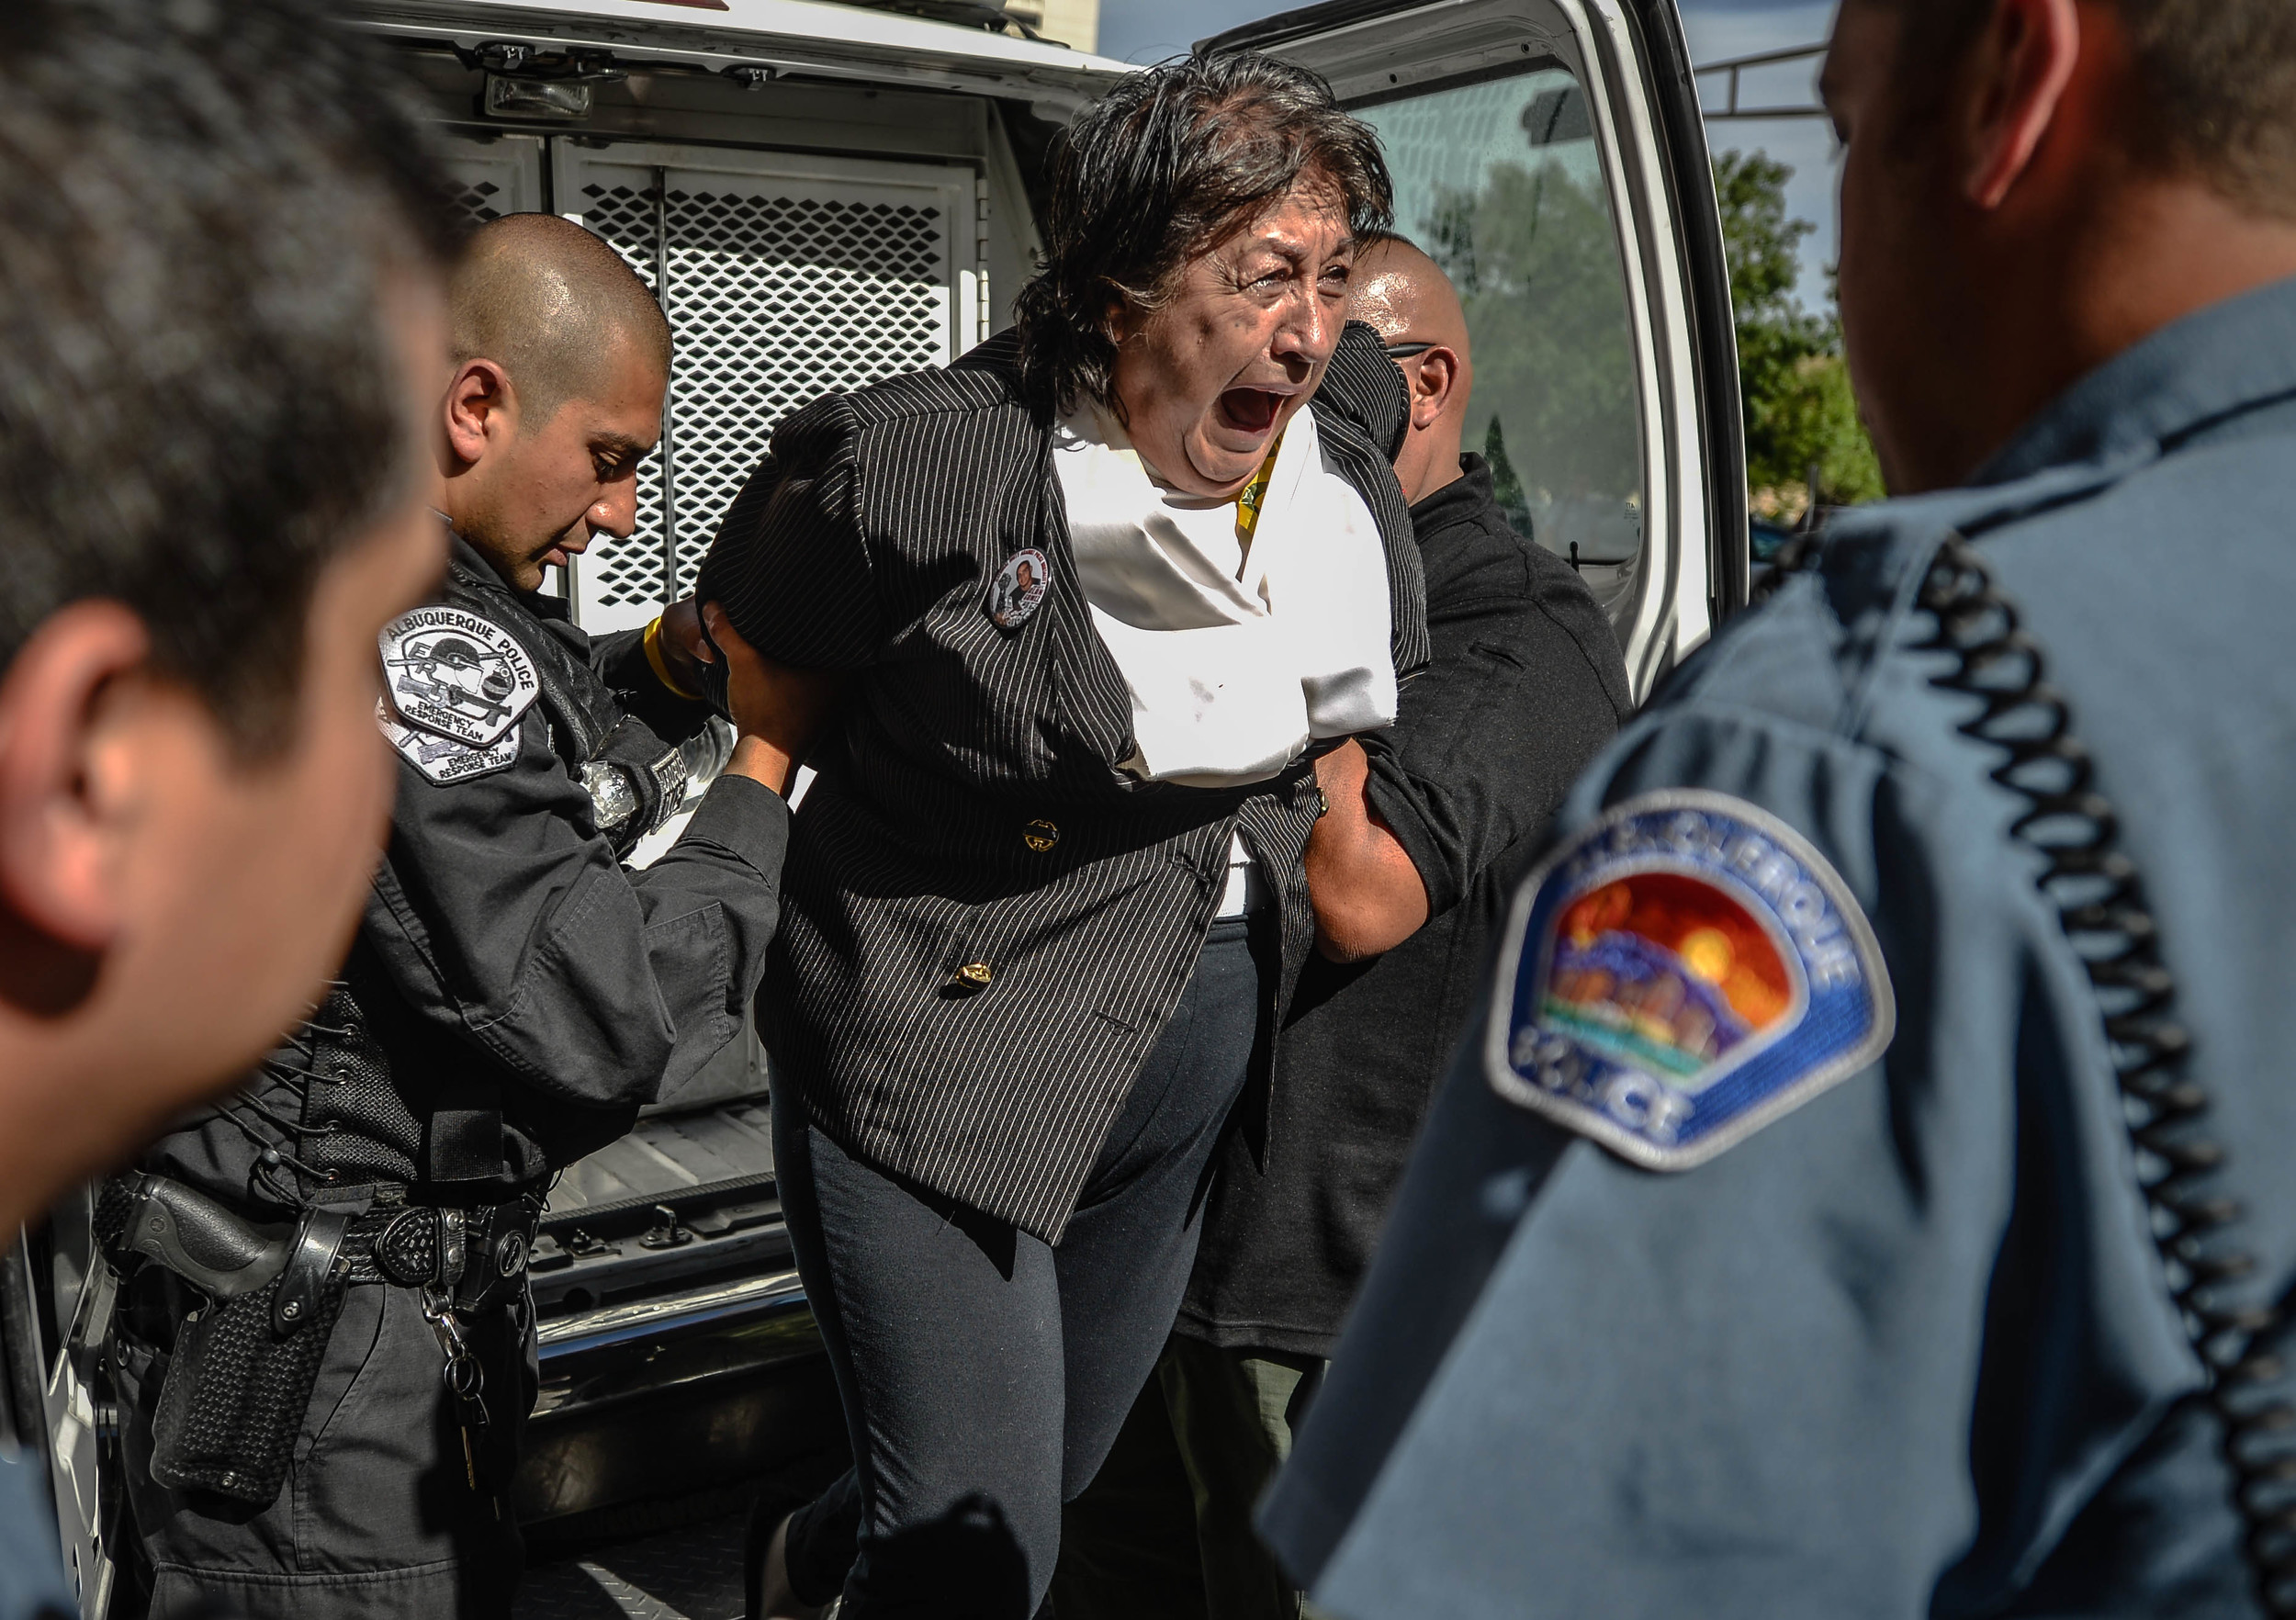 Protester Nora Anaya is taken to the downtown detention center after being arrested. Anaya's nephew was killed several years ago by APD. She chained herself to a structure near the mayor's office. (Roberto E. Rosales/Journal)